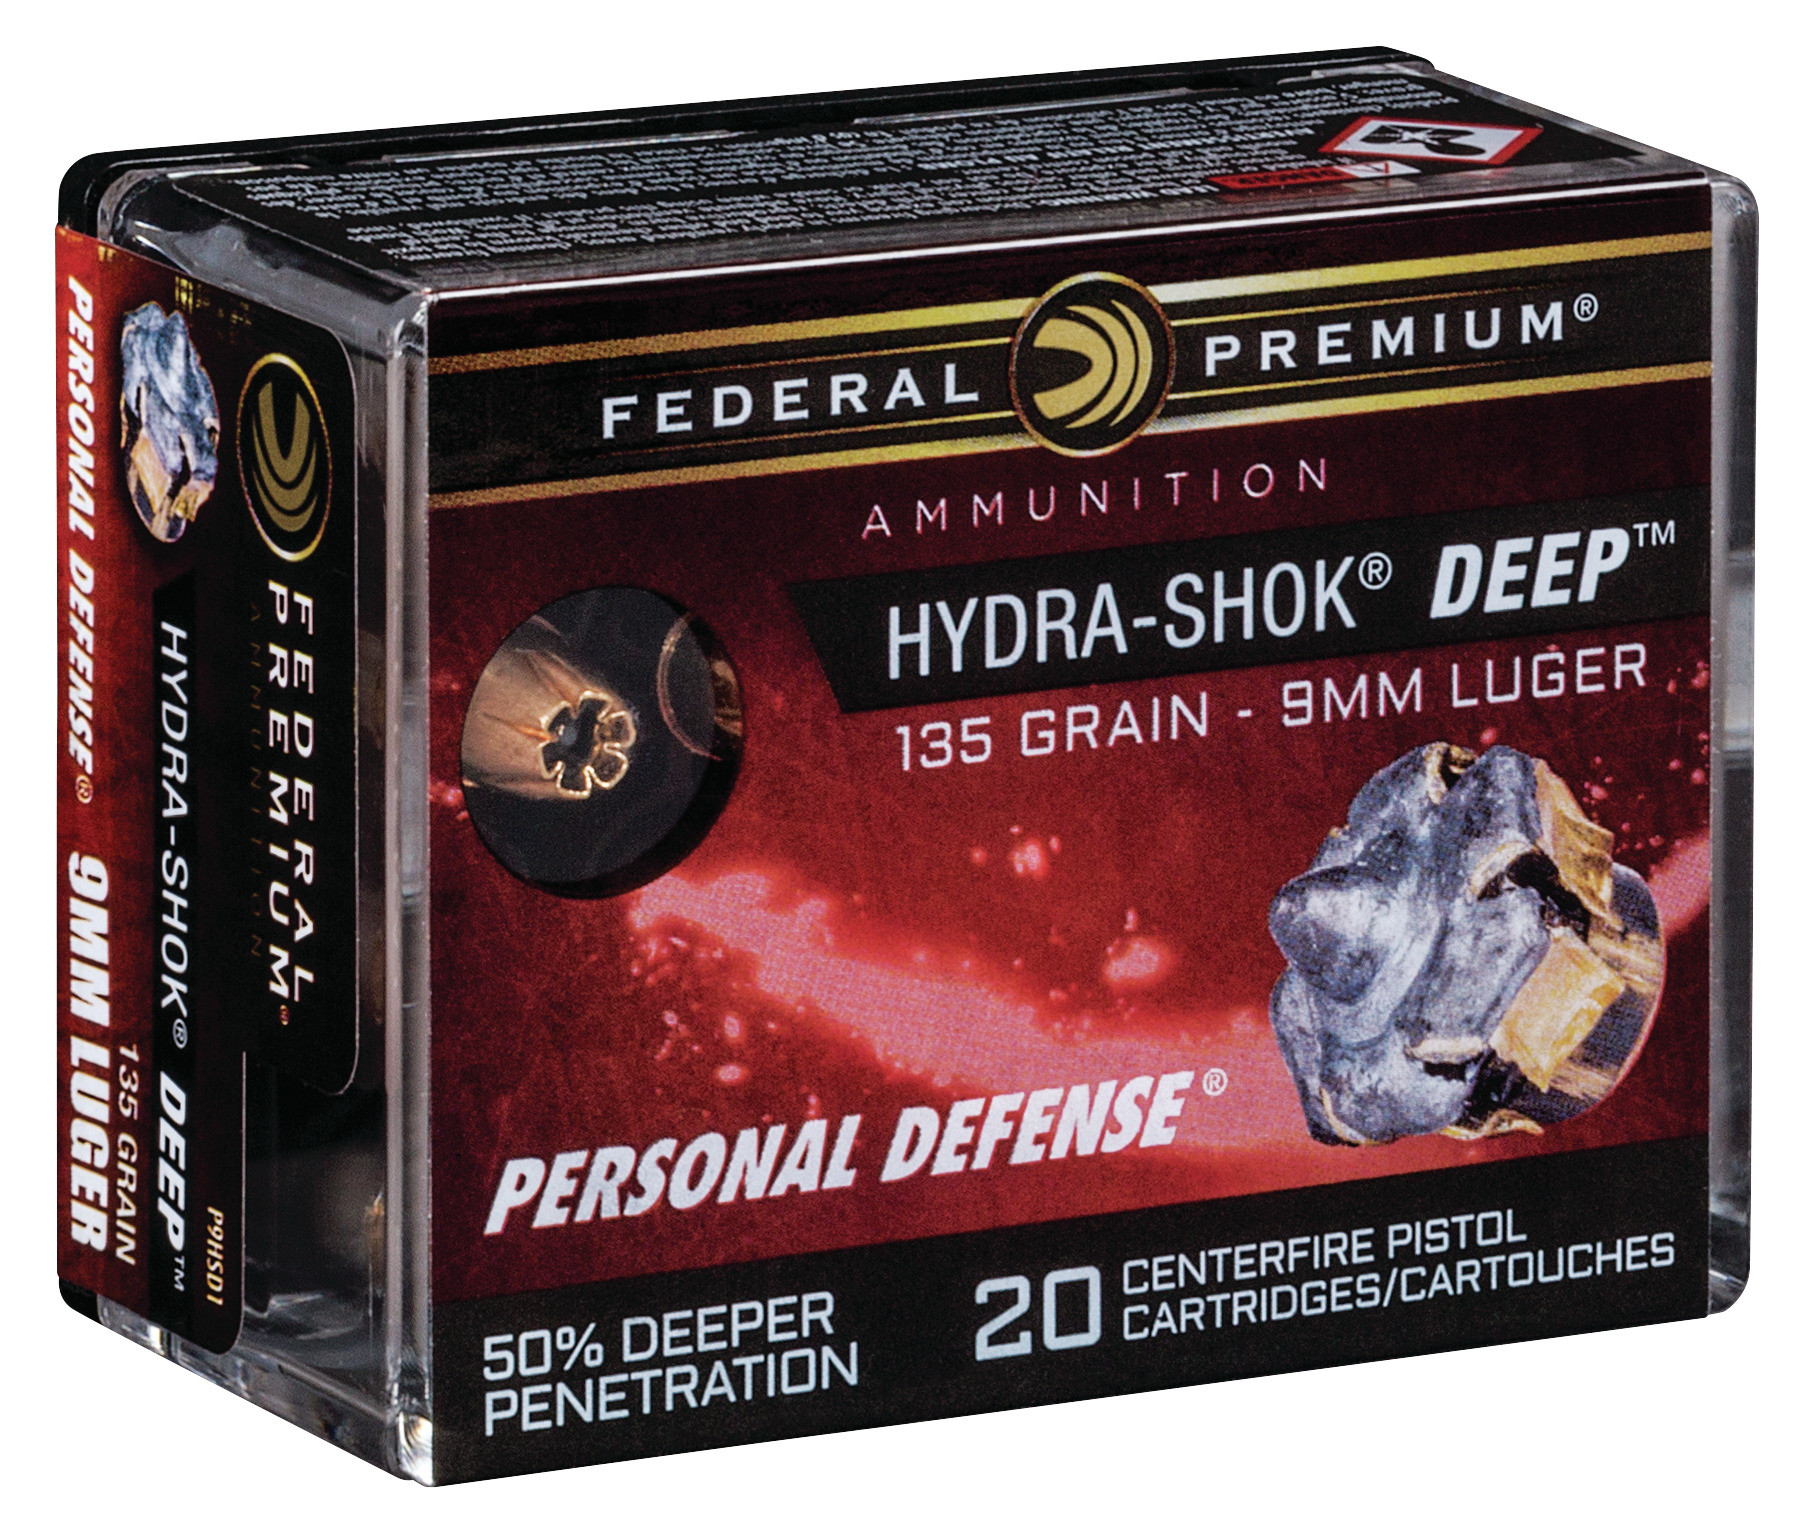 Federal Premium Personal Defense Ammunition 9mm Luger 135 Grain Hydra-Shok Deep Jacketed Hollow Point Per 20